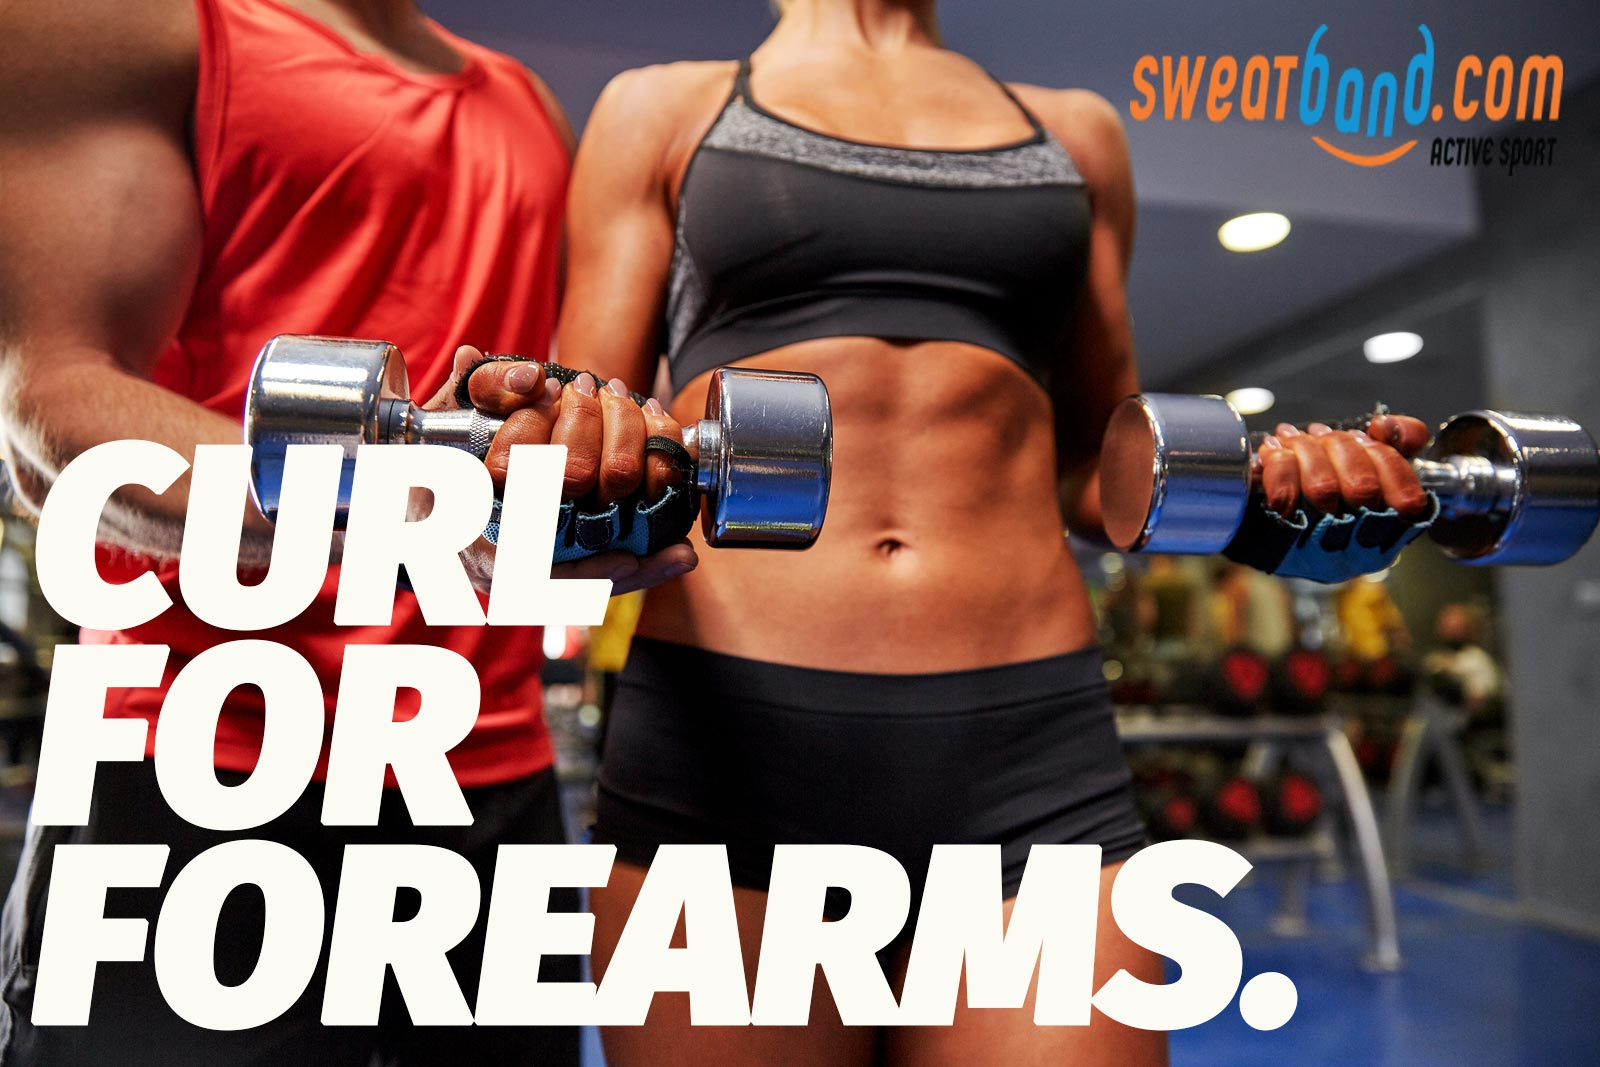 Try some simple wrist curls to increase your forearm strength